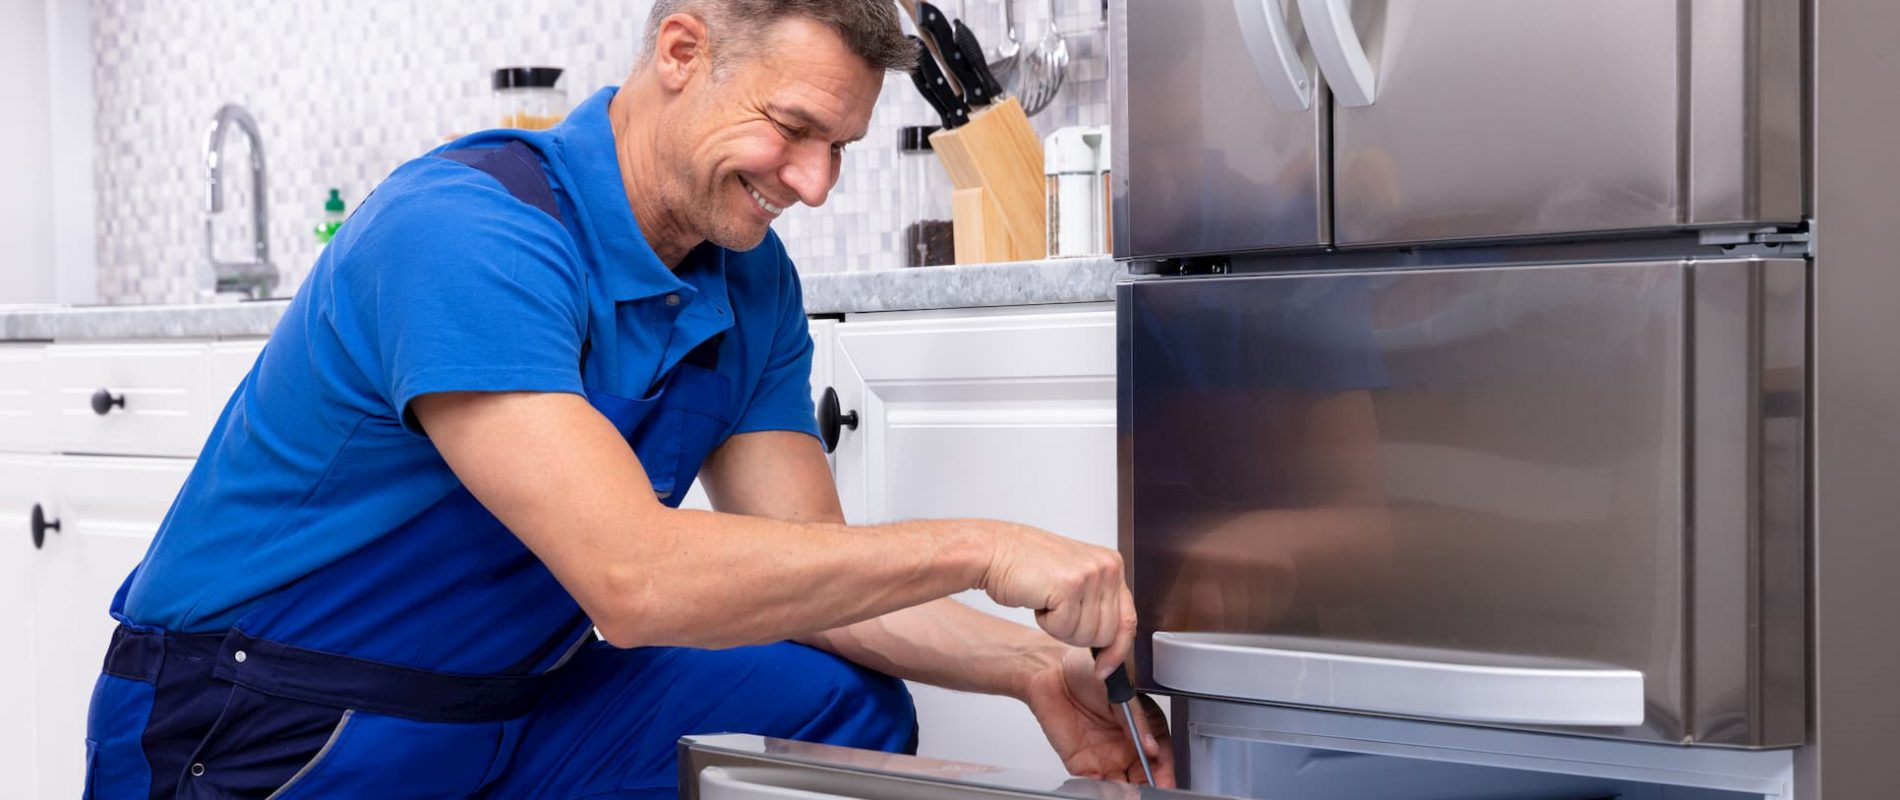 Kanata appliance repair